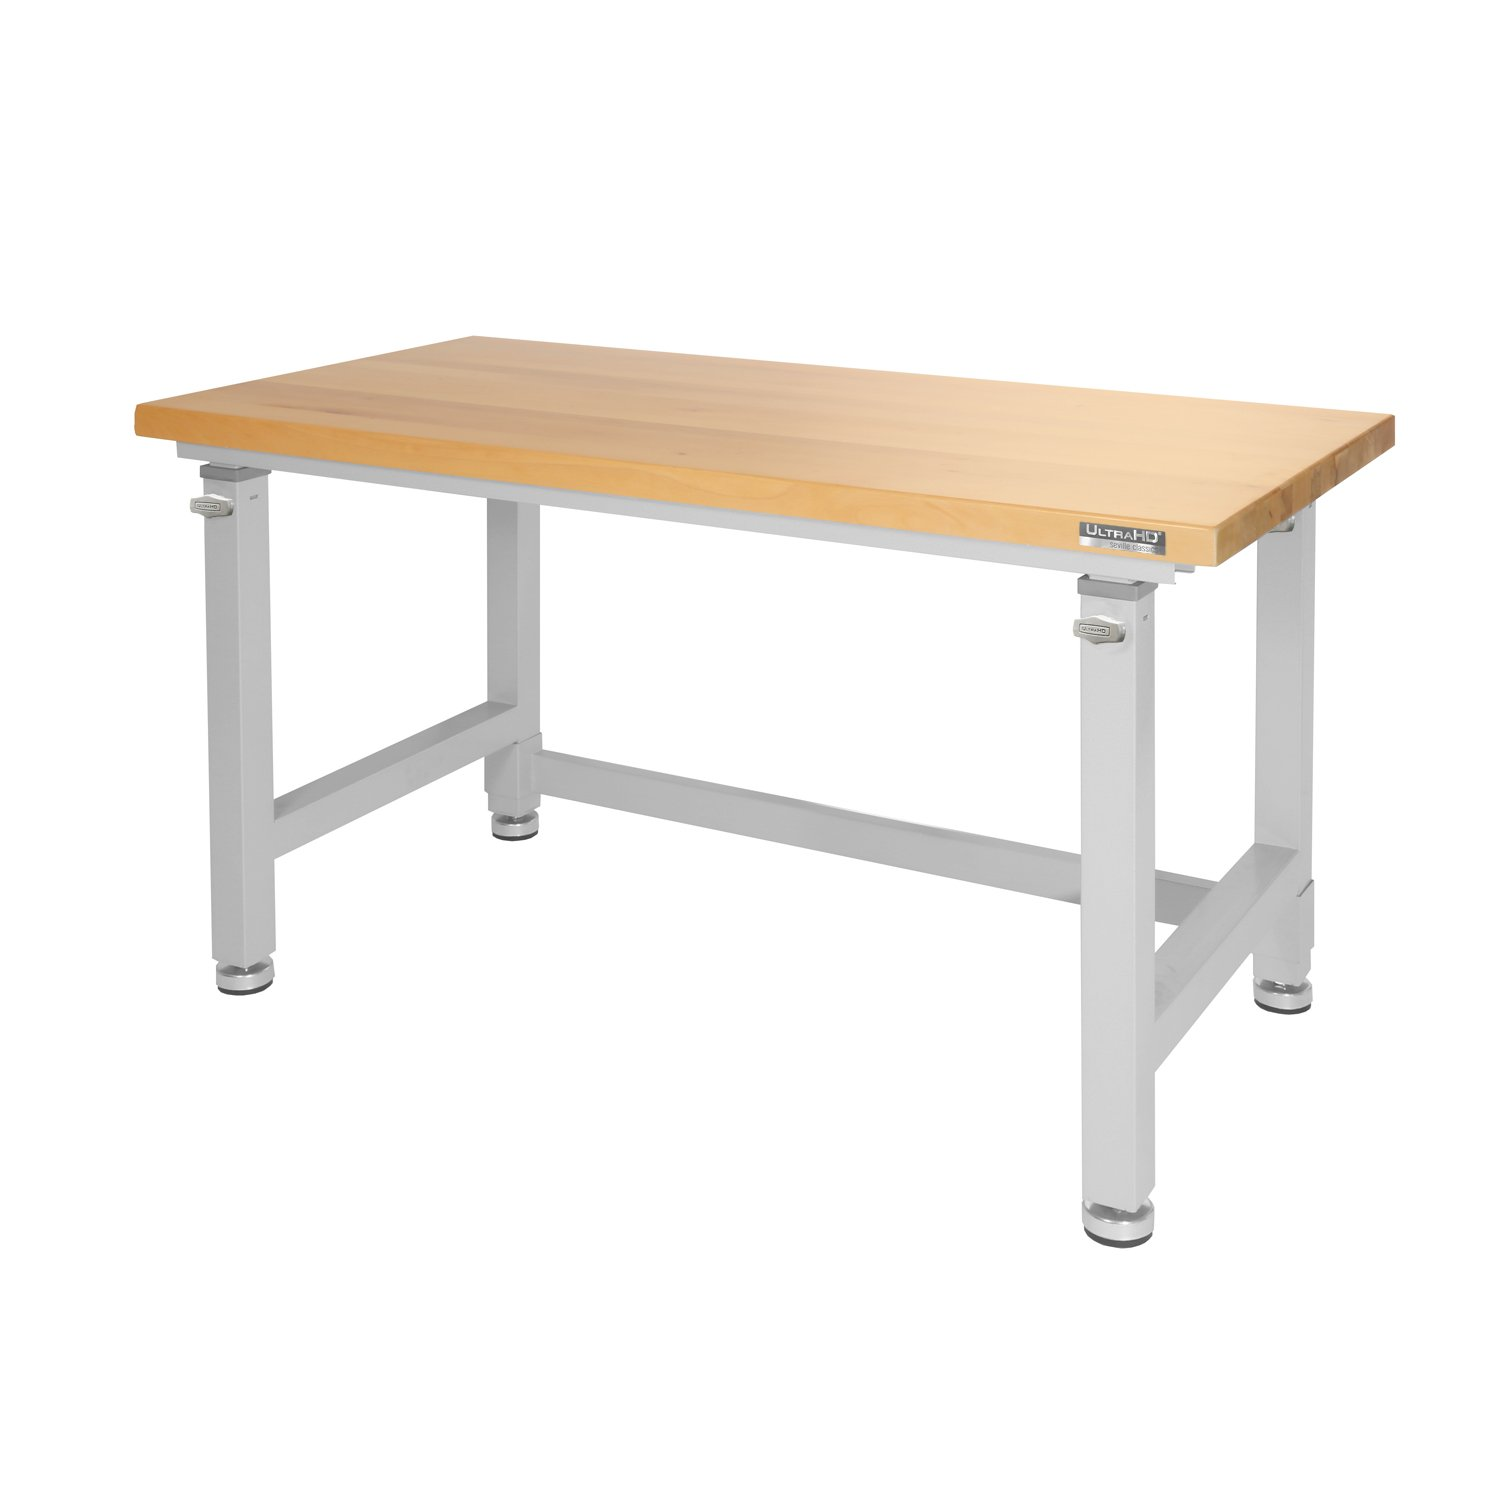 UltraHD Adjustable Height Workbench